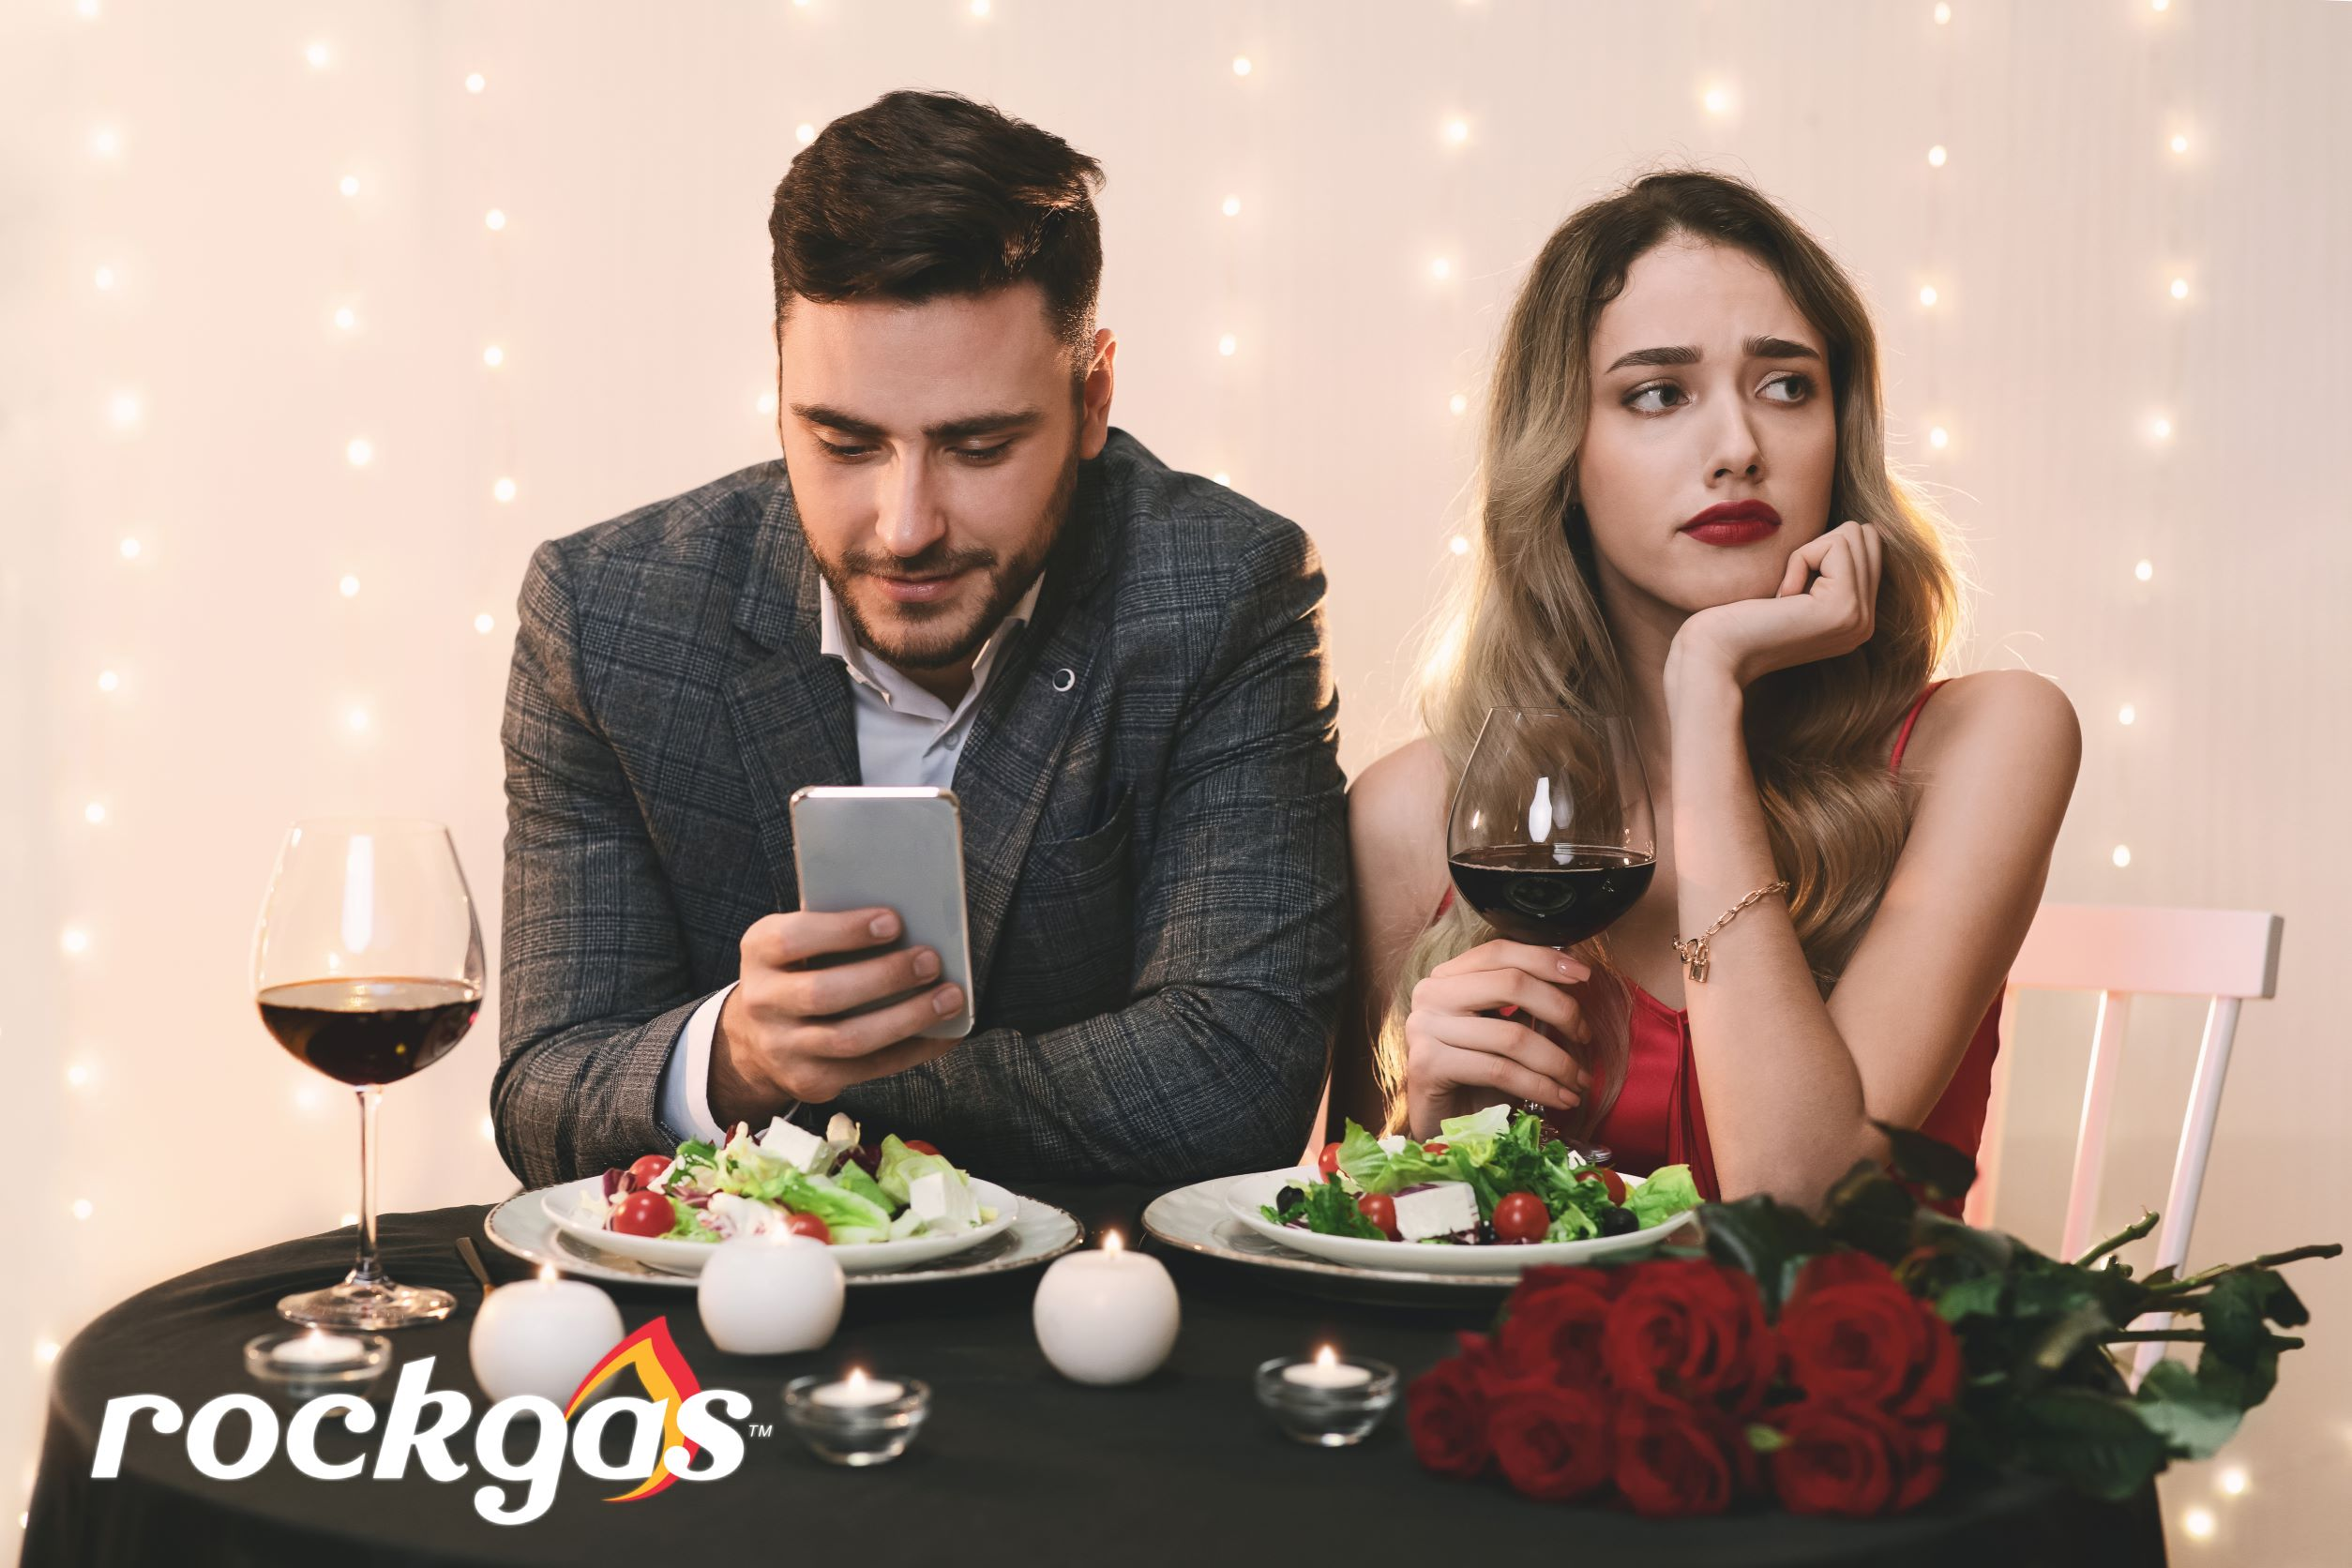 Order your LPG anywhere, anytime with the Rockgas App